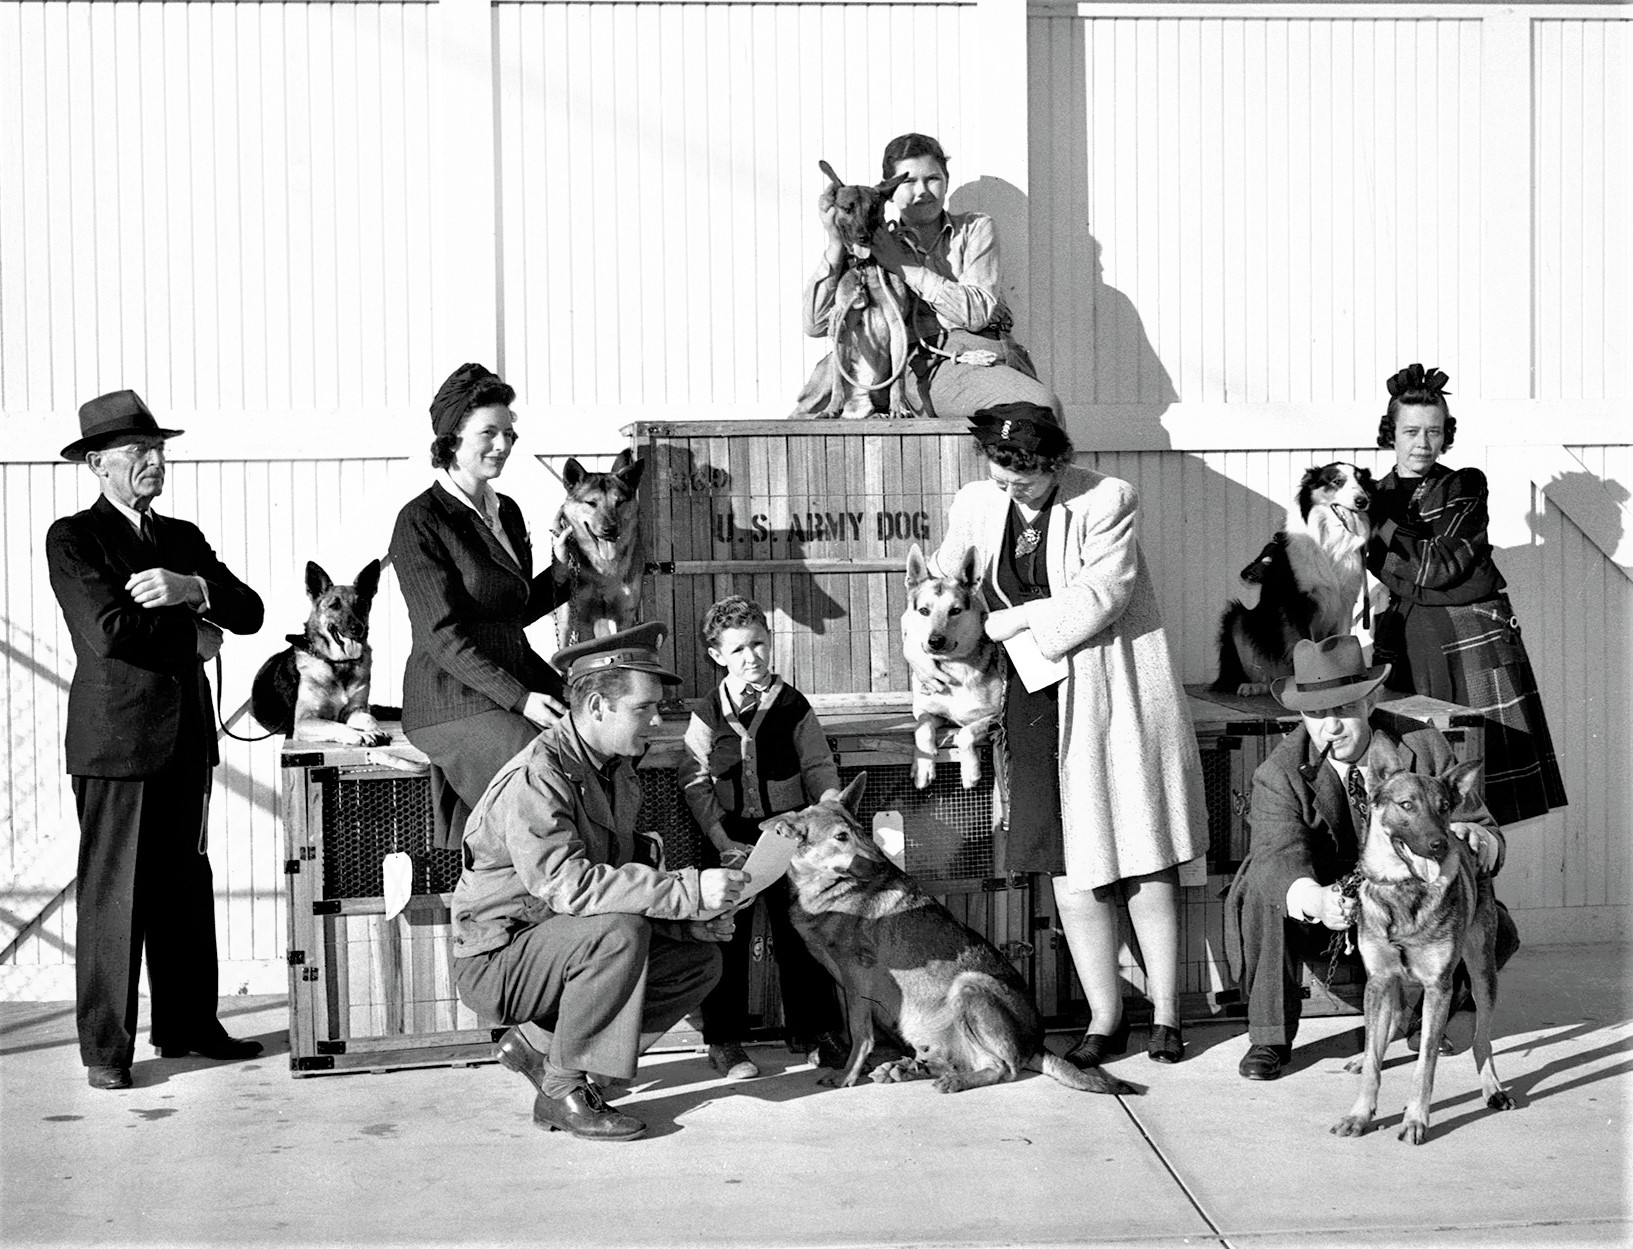 Dogs to be shipped to Dog Corps at Front Royal, Virginia  Fort Worth Star-Telegram Collection